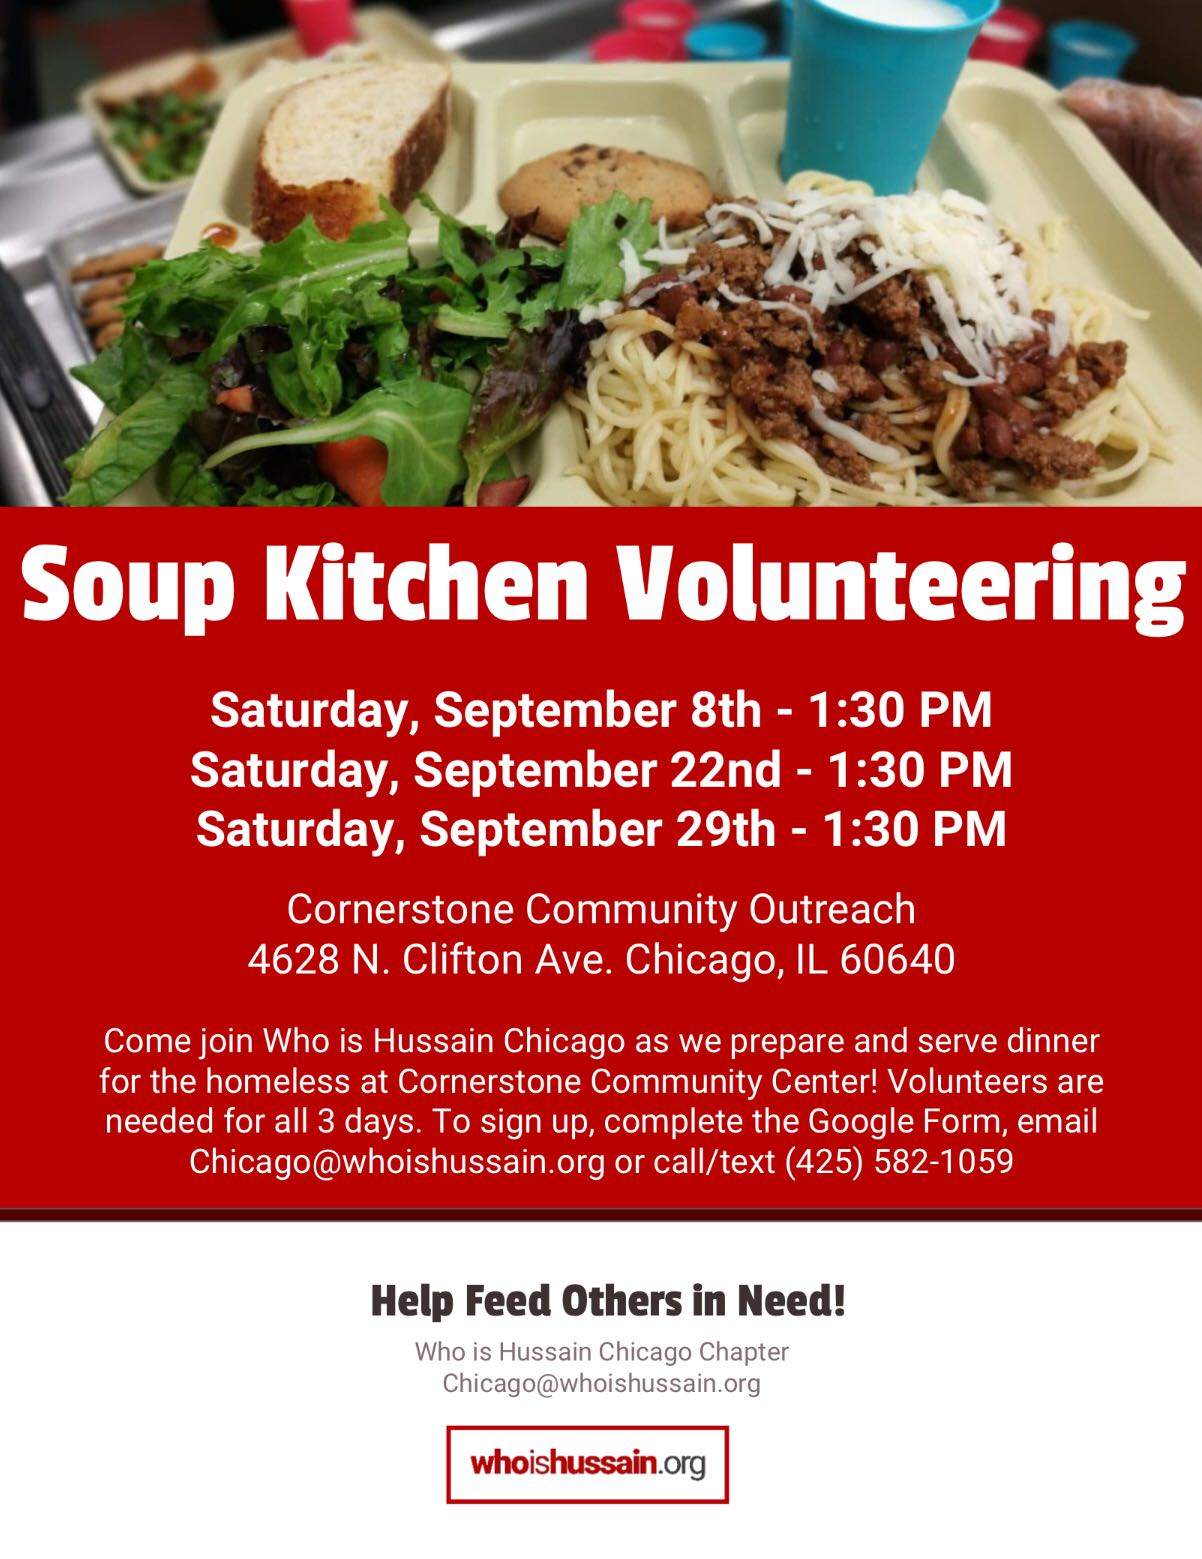 Come Join The Who Is Hussain Chicago Chapter As We Send Twenty Volunteers  To Cornerstone Community Outreach To Assist In Preparing And Serving Food  To ...